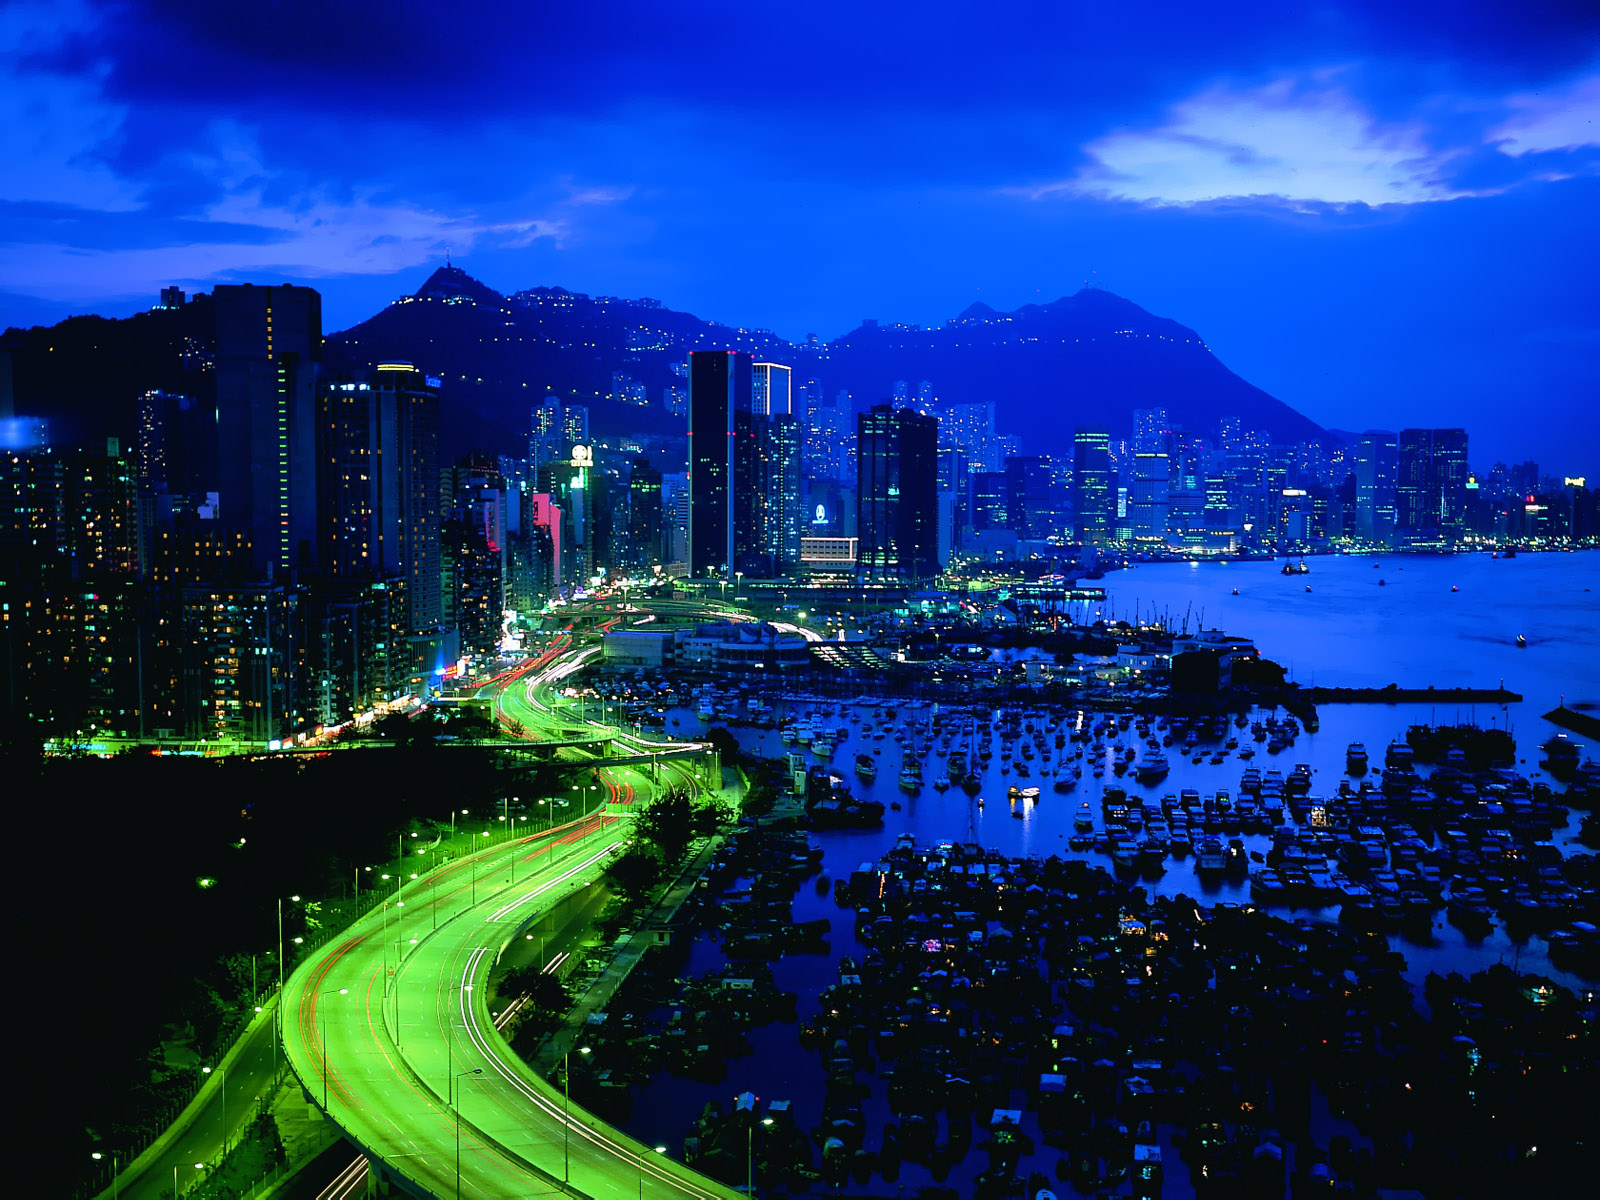 http://4.bp.blogspot.com/_JUeF8tYbiVw/TQx-YIxpqeI/AAAAAAAAB84/JusYtKIEWx4/s1600/Night-City-Lights-HD-Wallpapers-1.jpg